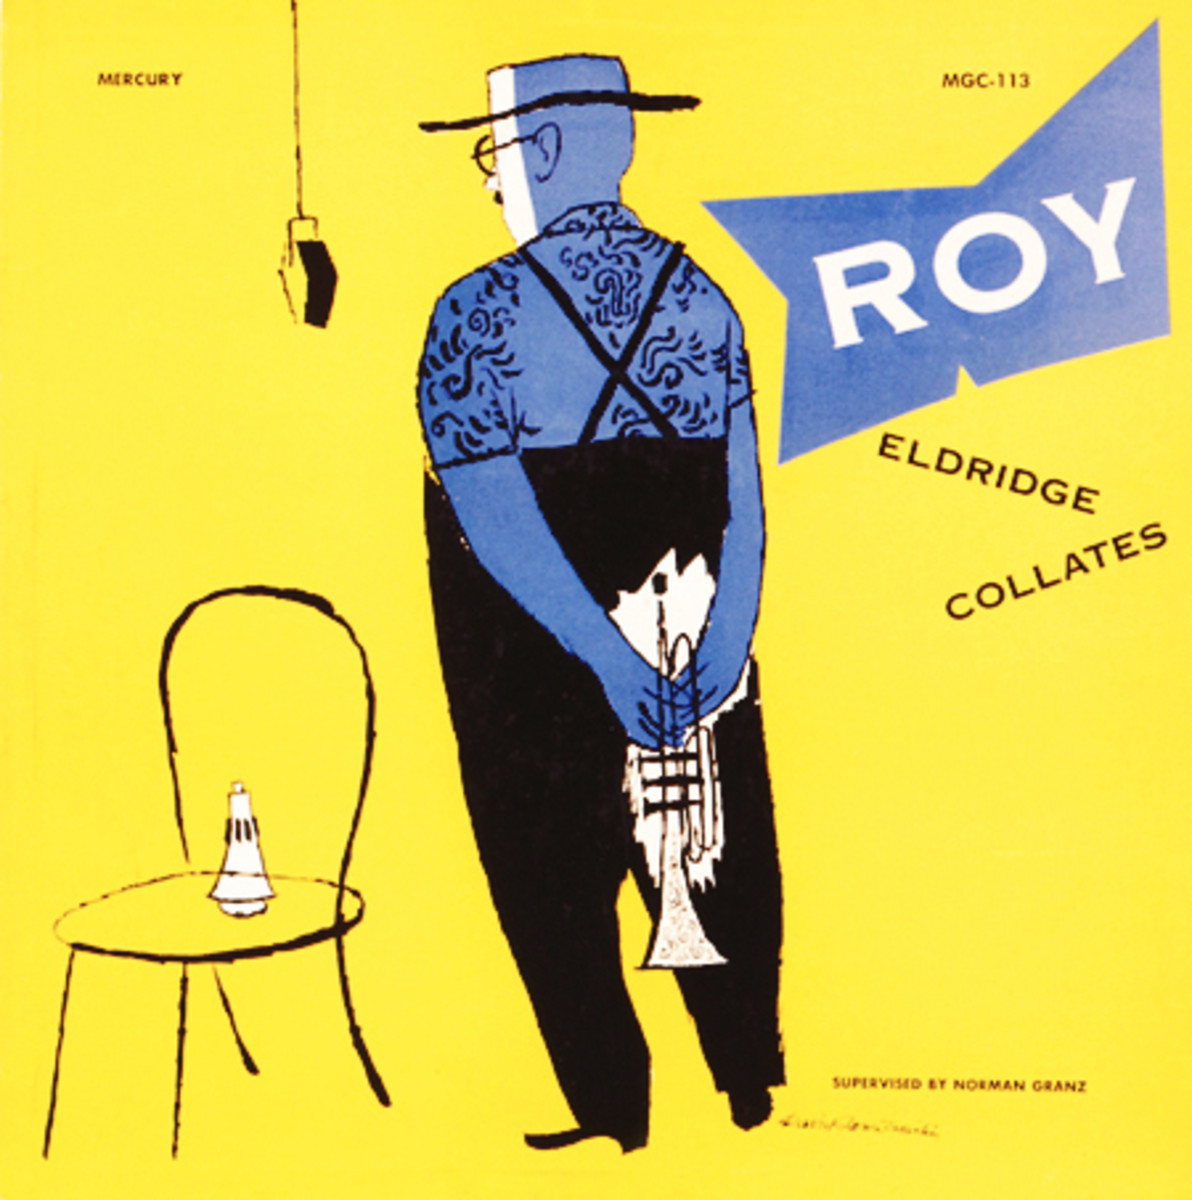 "Roy Eldridge ""Roy Eldridge Collates""  Mercury MG C  113  10"" LP Vinyl Record (1952) Album Cover Art by David Stone Martin"